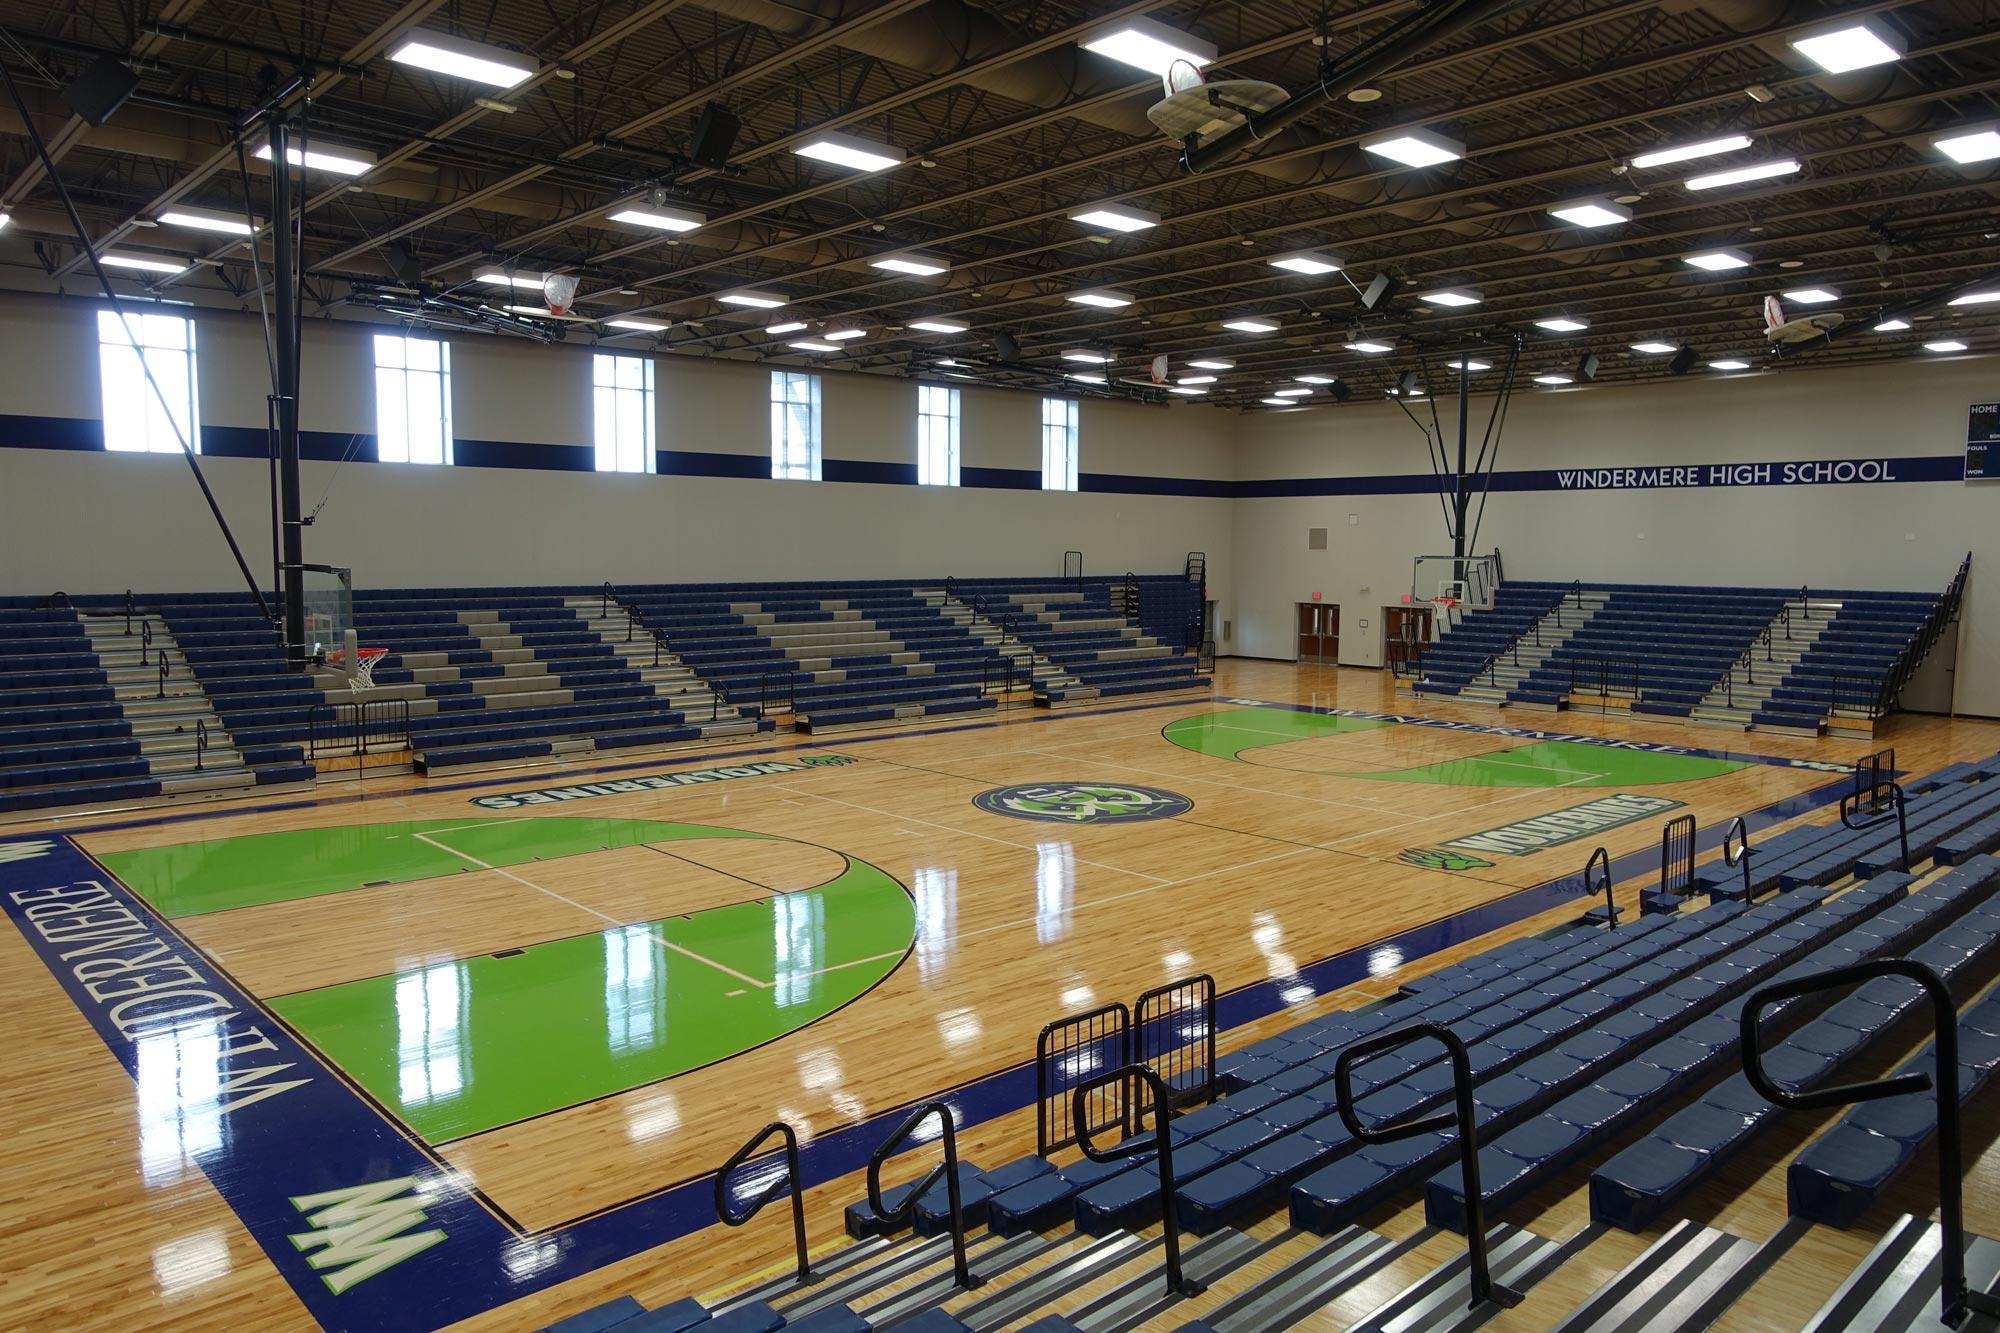 Windermere High School gymnasium flooring and seating